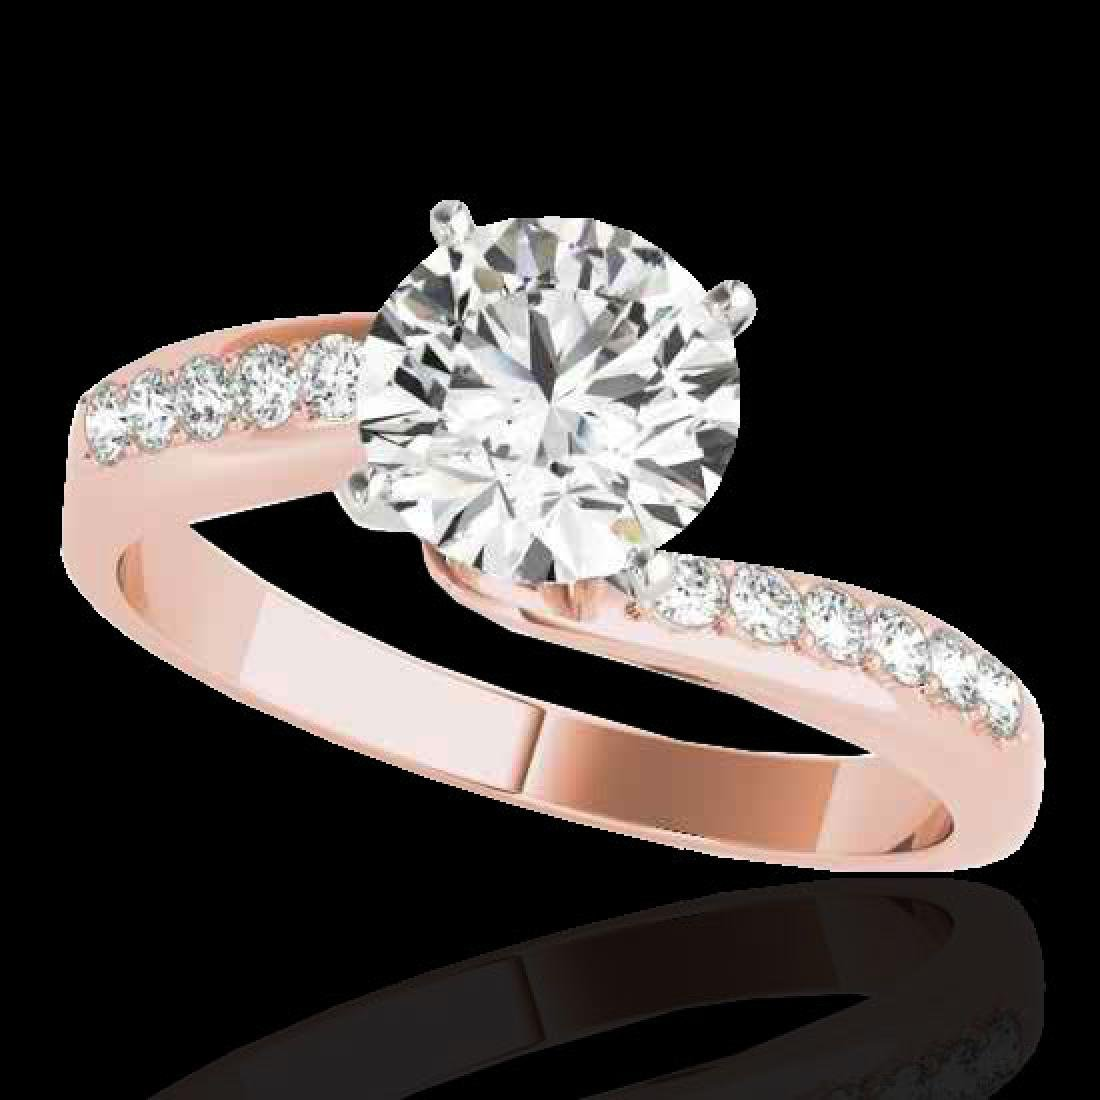 1.4 CTW H-SI/I Certified Diamond Bypass Solitaire Ring